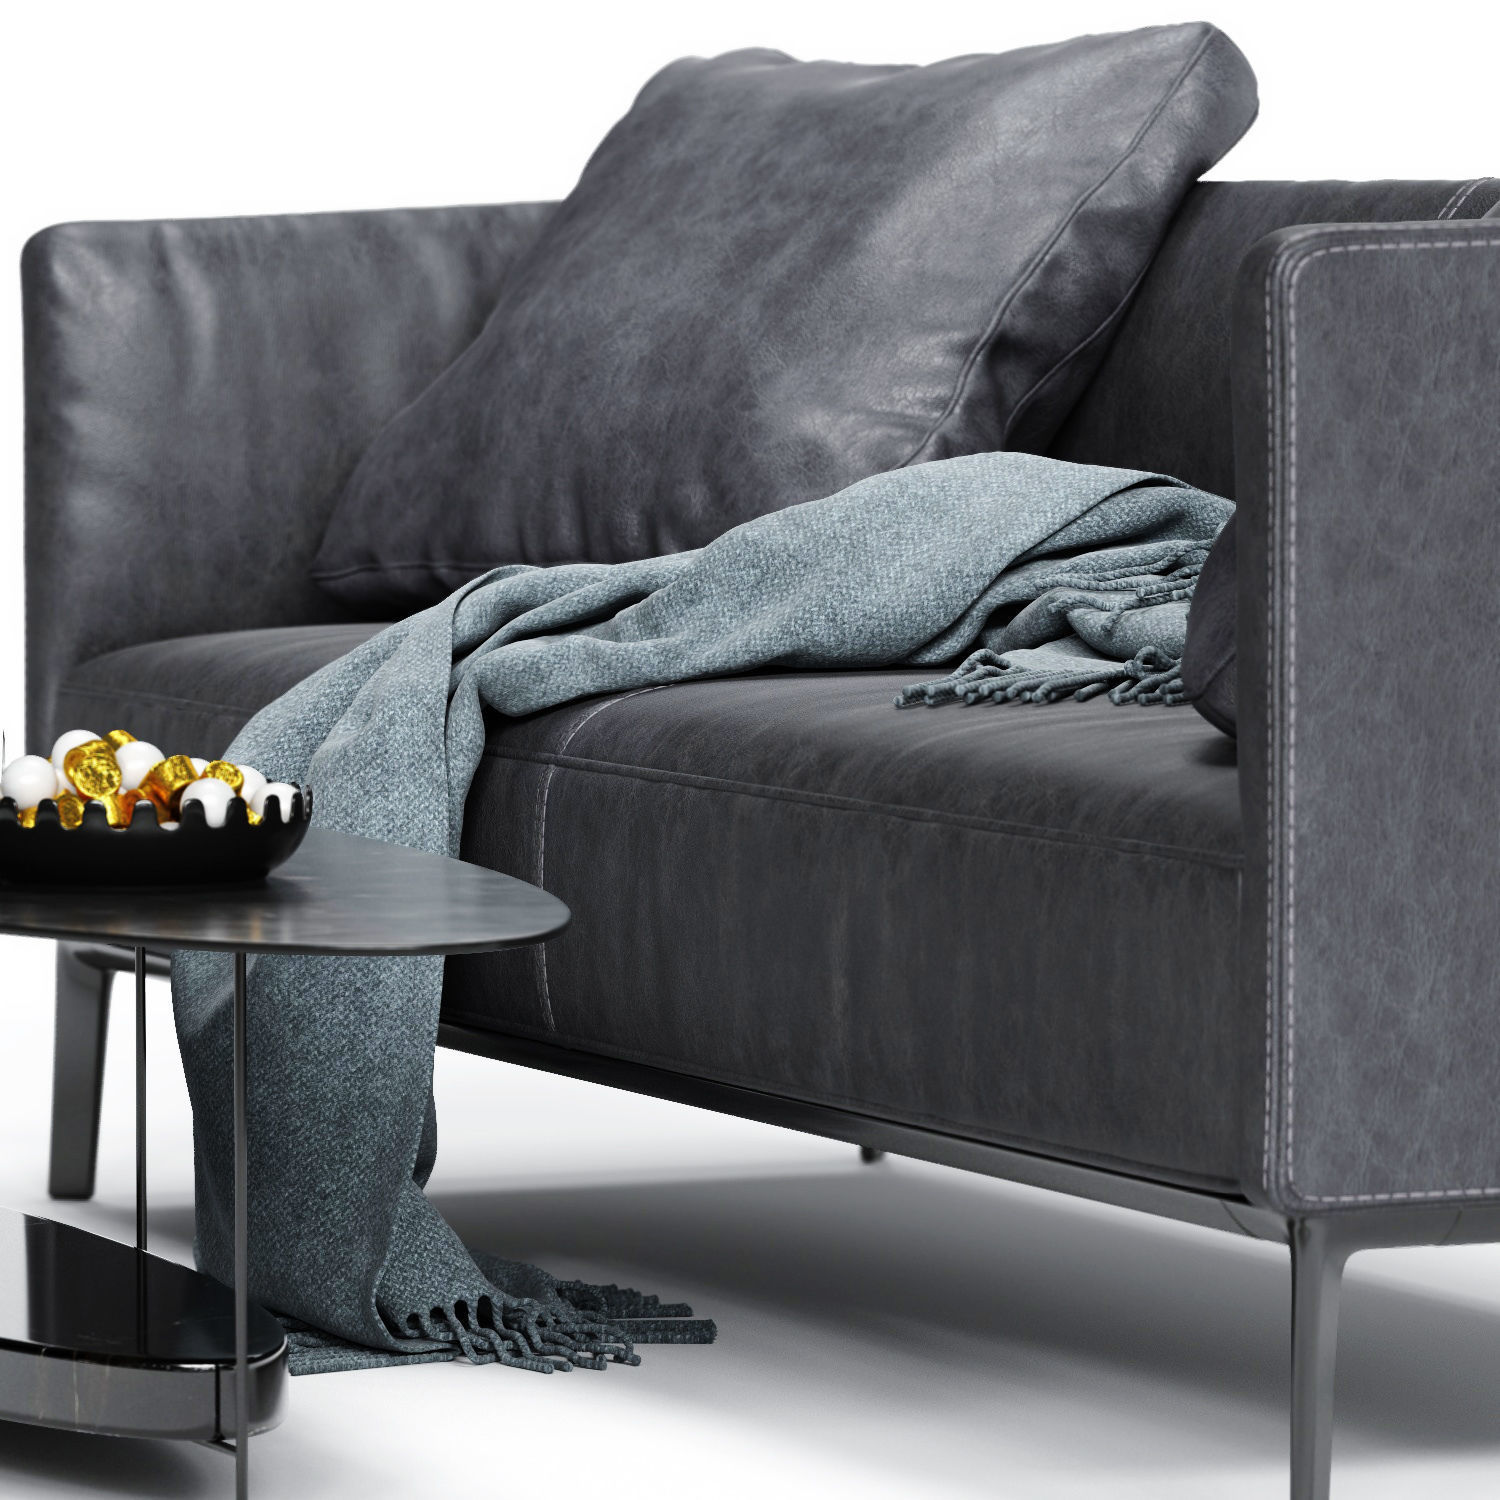 Divano Camden Molteni Download Molteni And Camden Sofa Buy From Candbell Watson